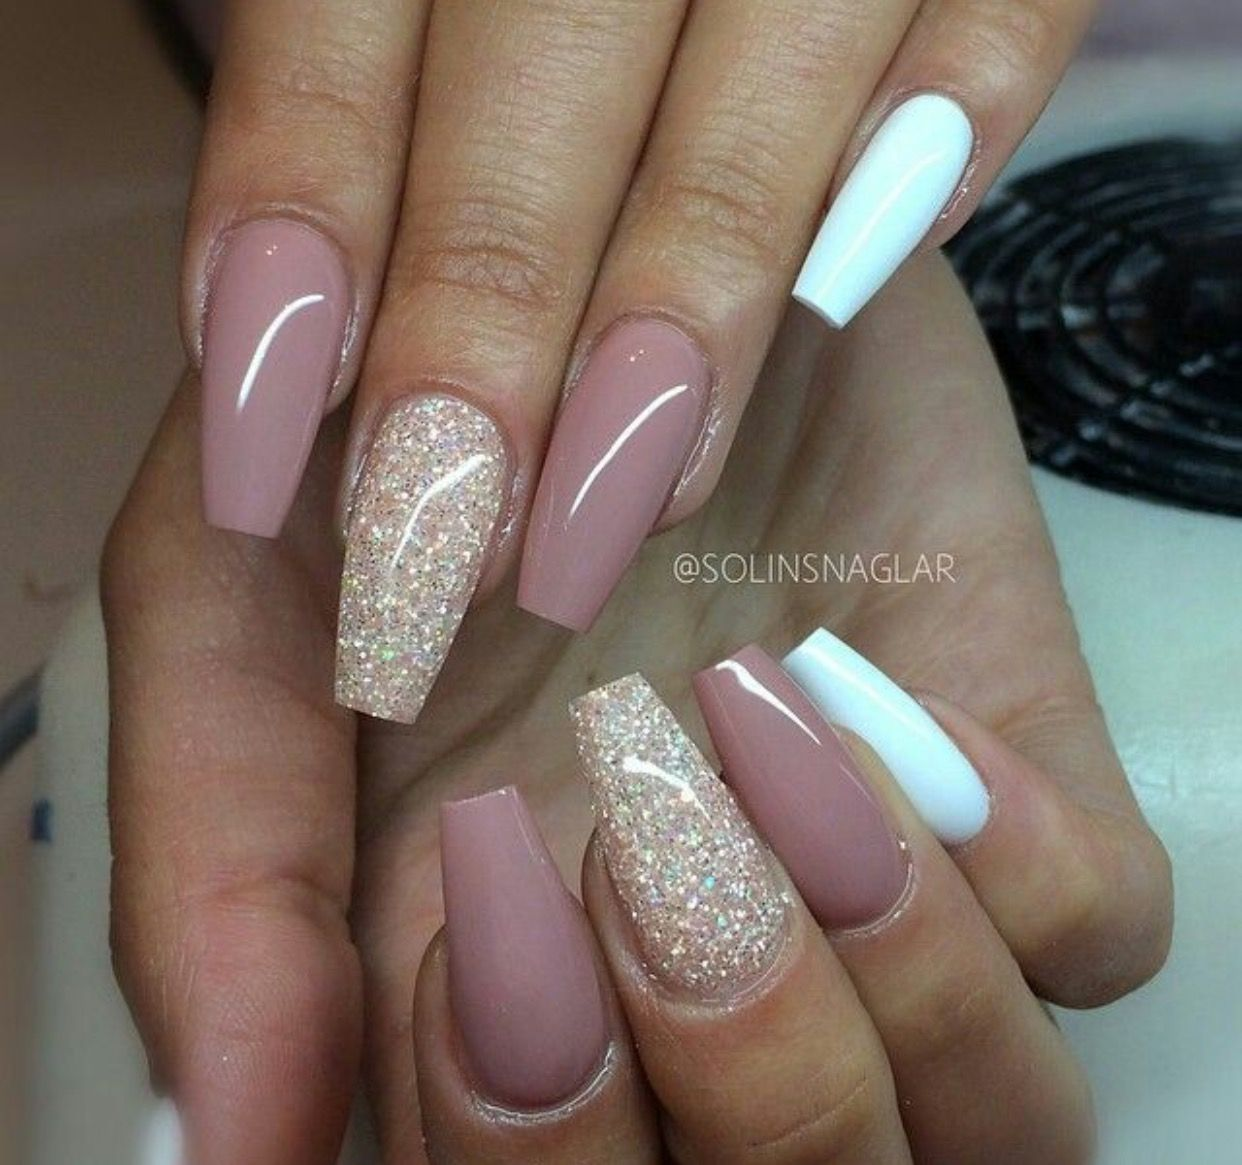 Pin von Taylor Miles auf Nails :) | Pinterest | Nageldesign ...